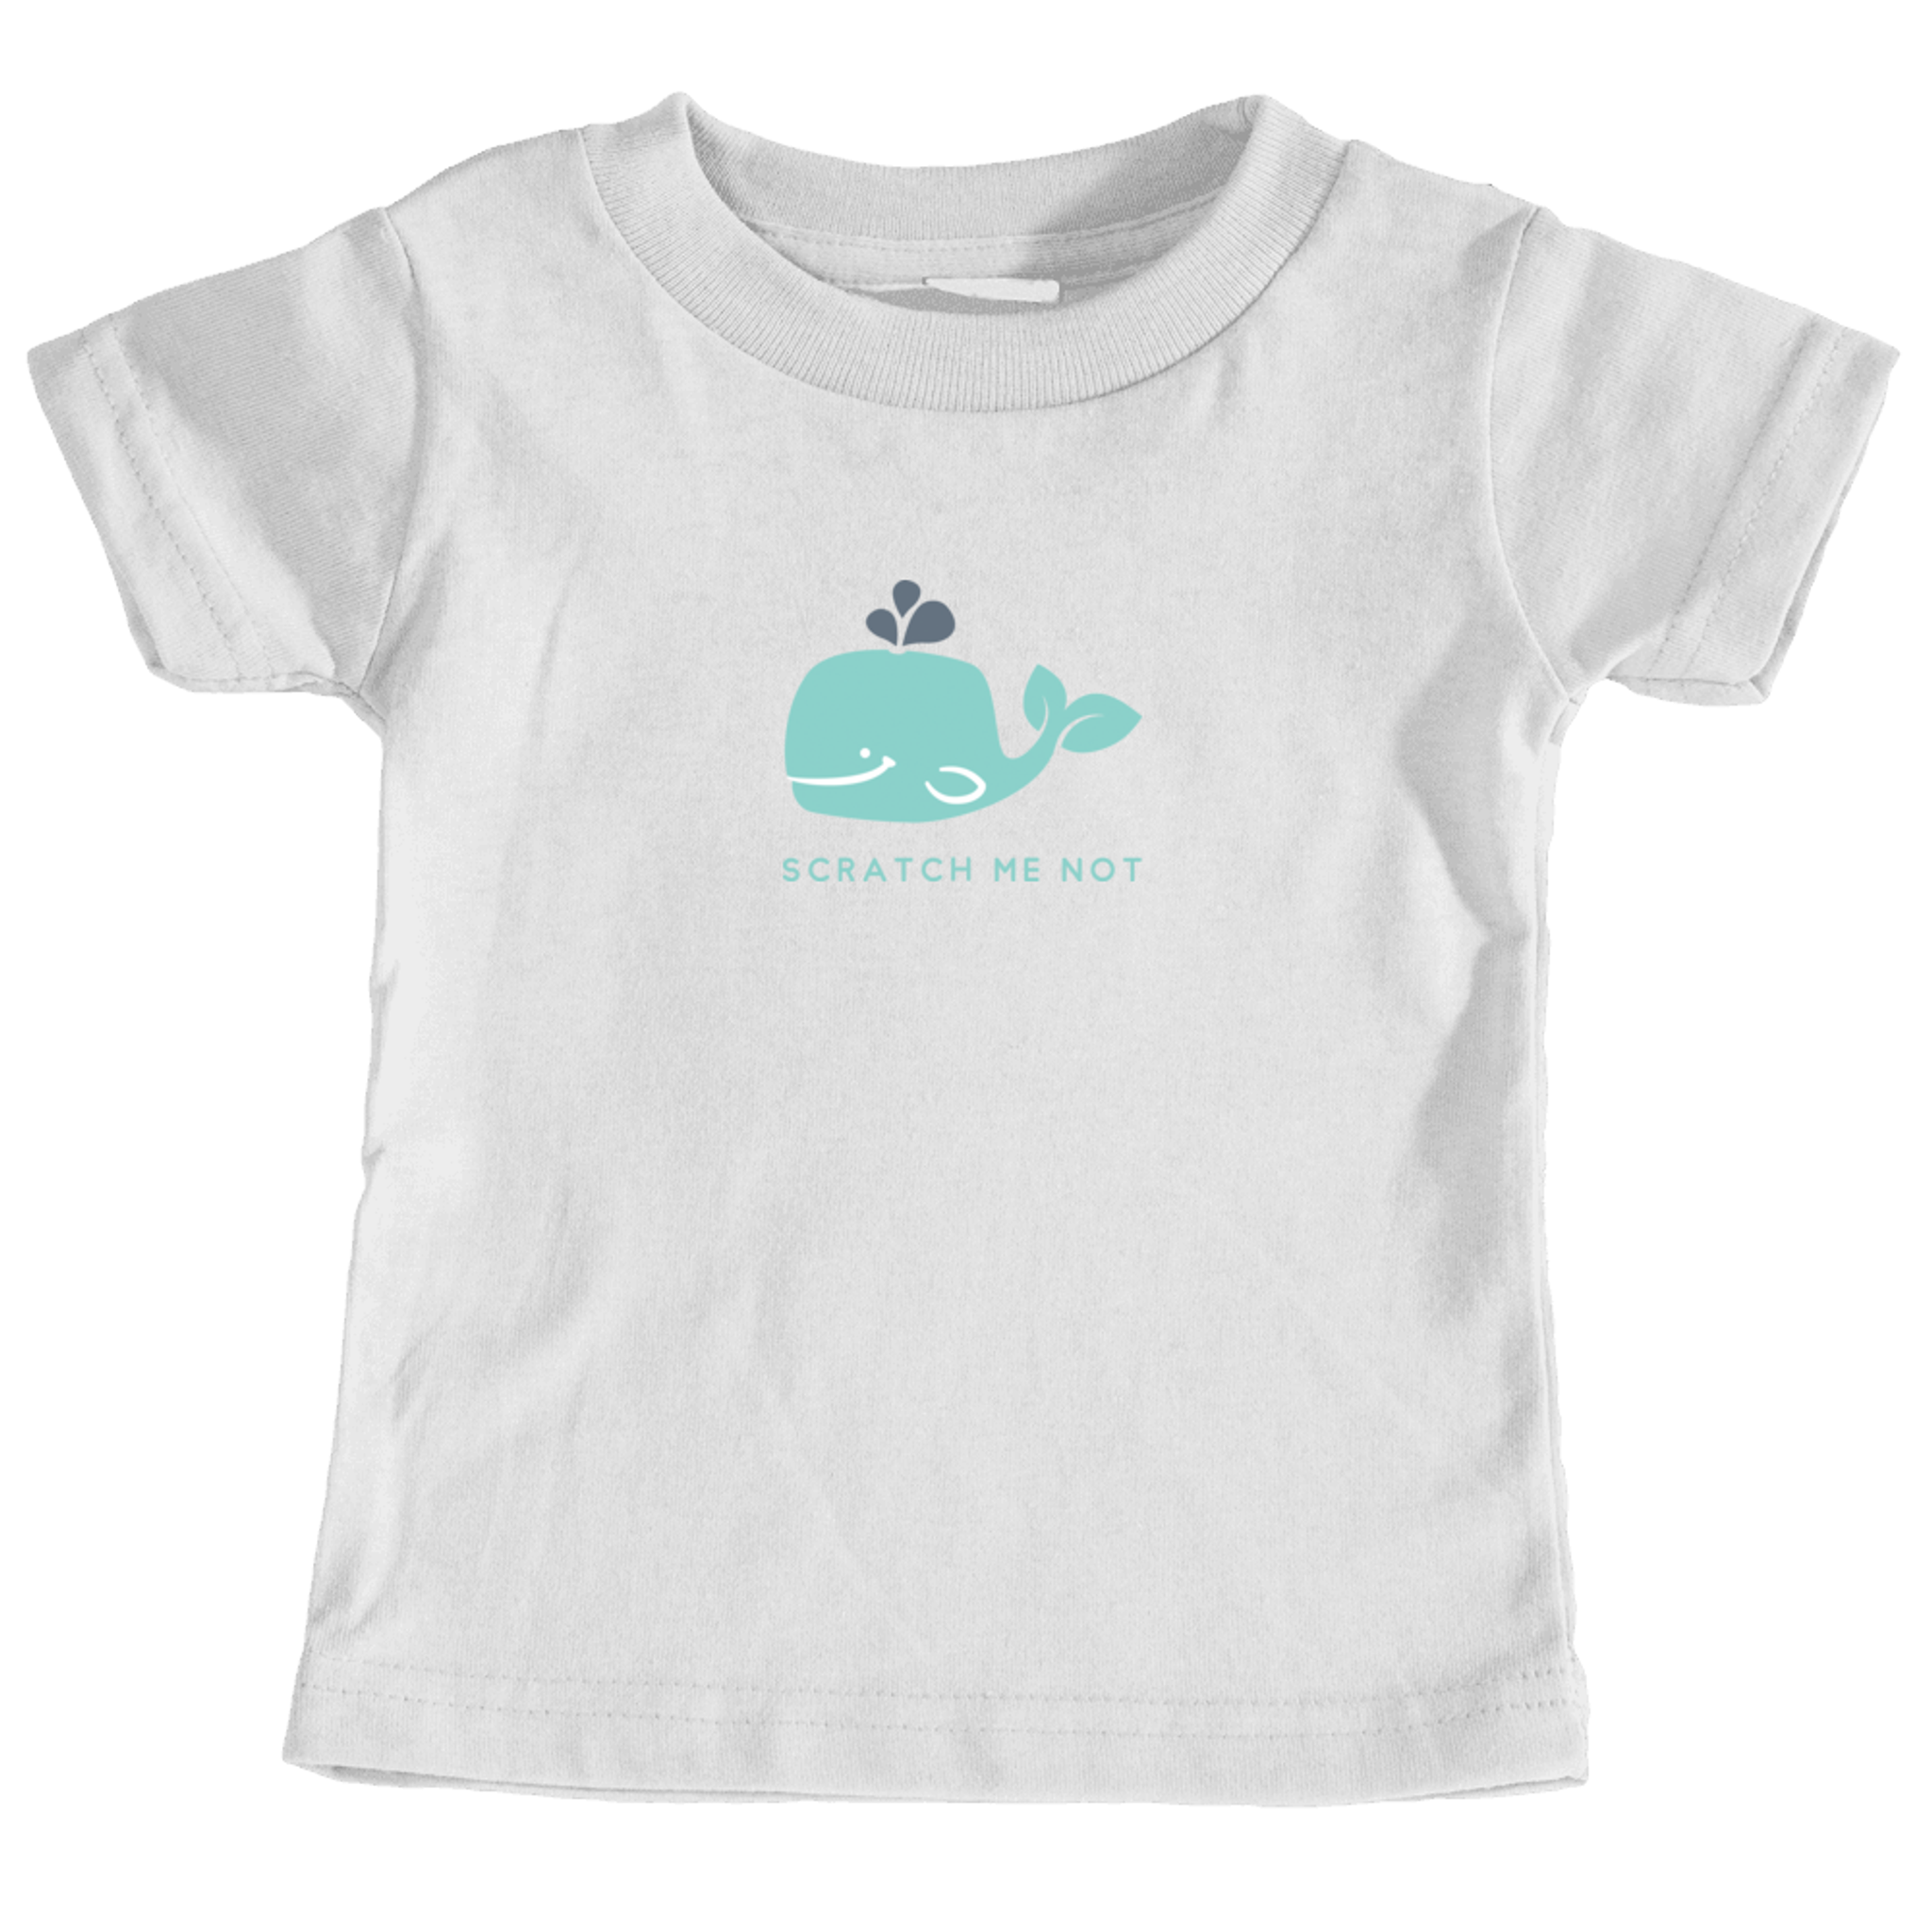 ScratchMeNot Short Sleeve tee for Infant